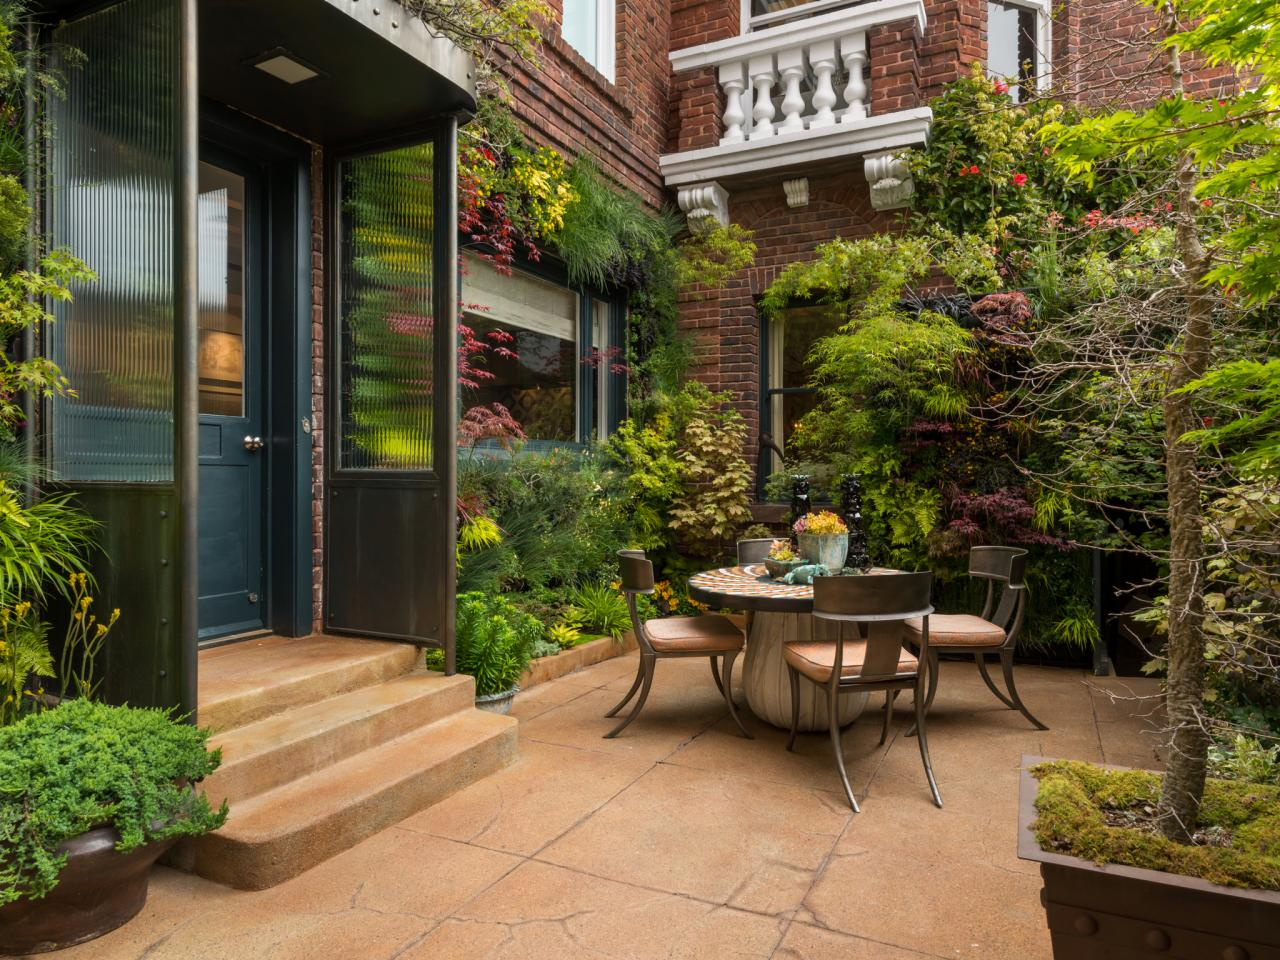 Apartment Building Landscaping Ideas easy patio ideas | patio ideas and patio design